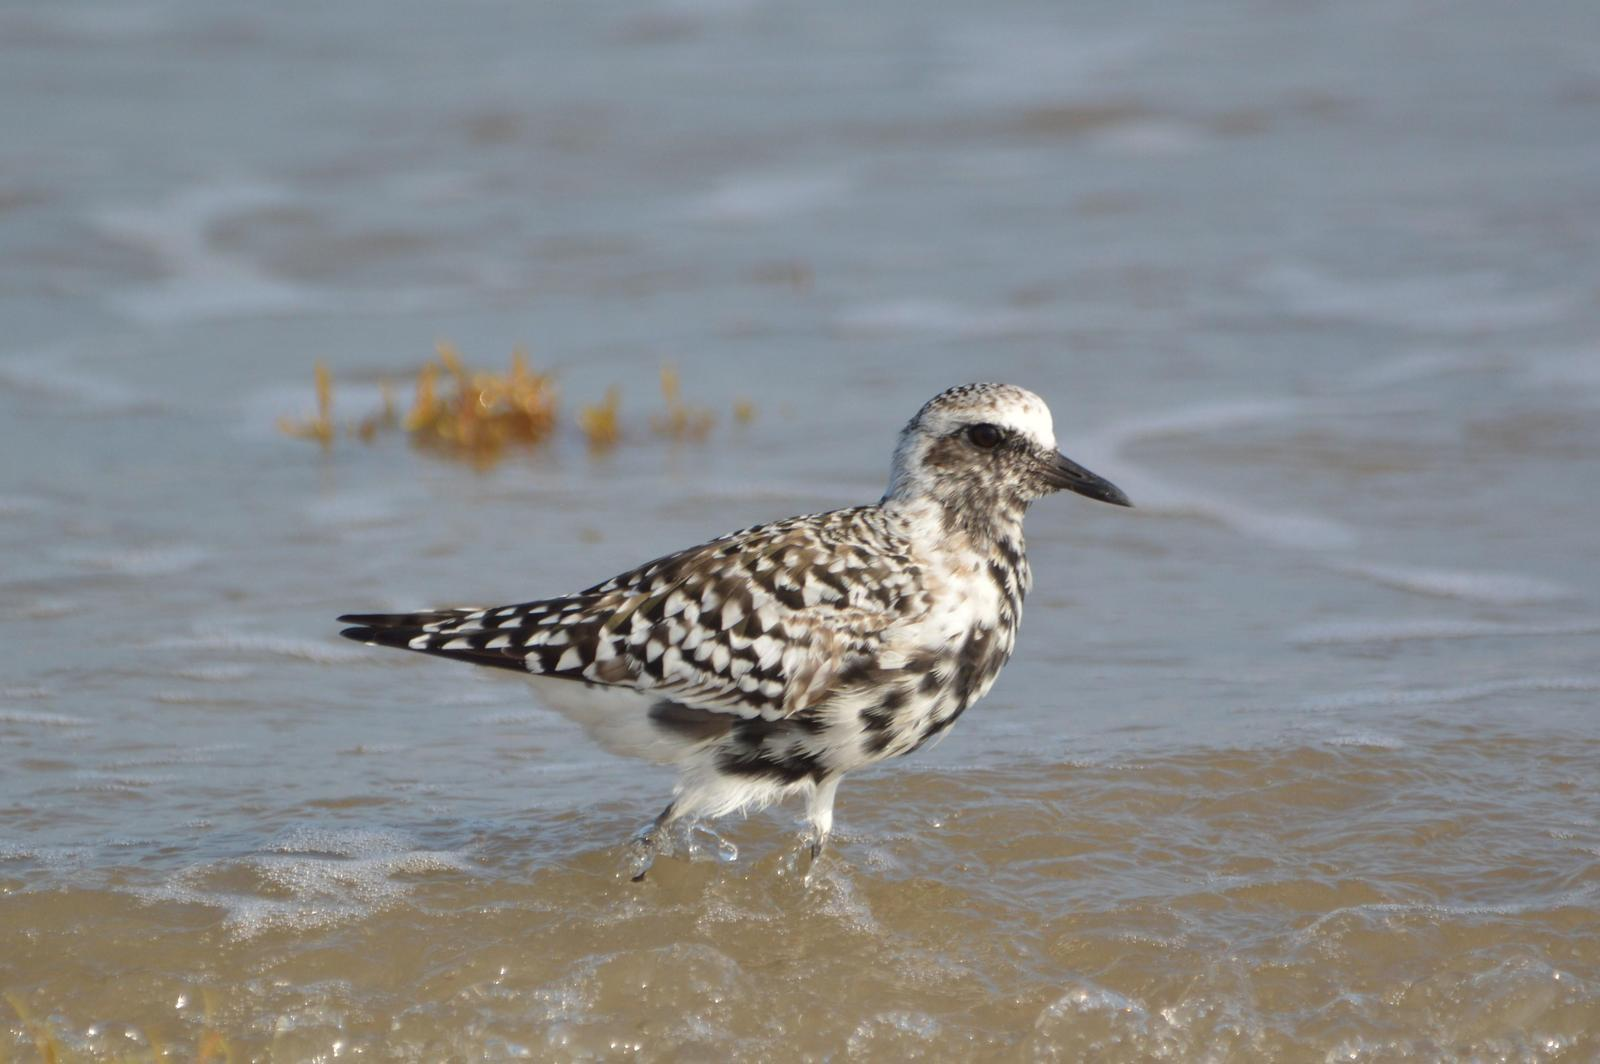 Black-bellied Plover Photo by Jeannette Piecznski